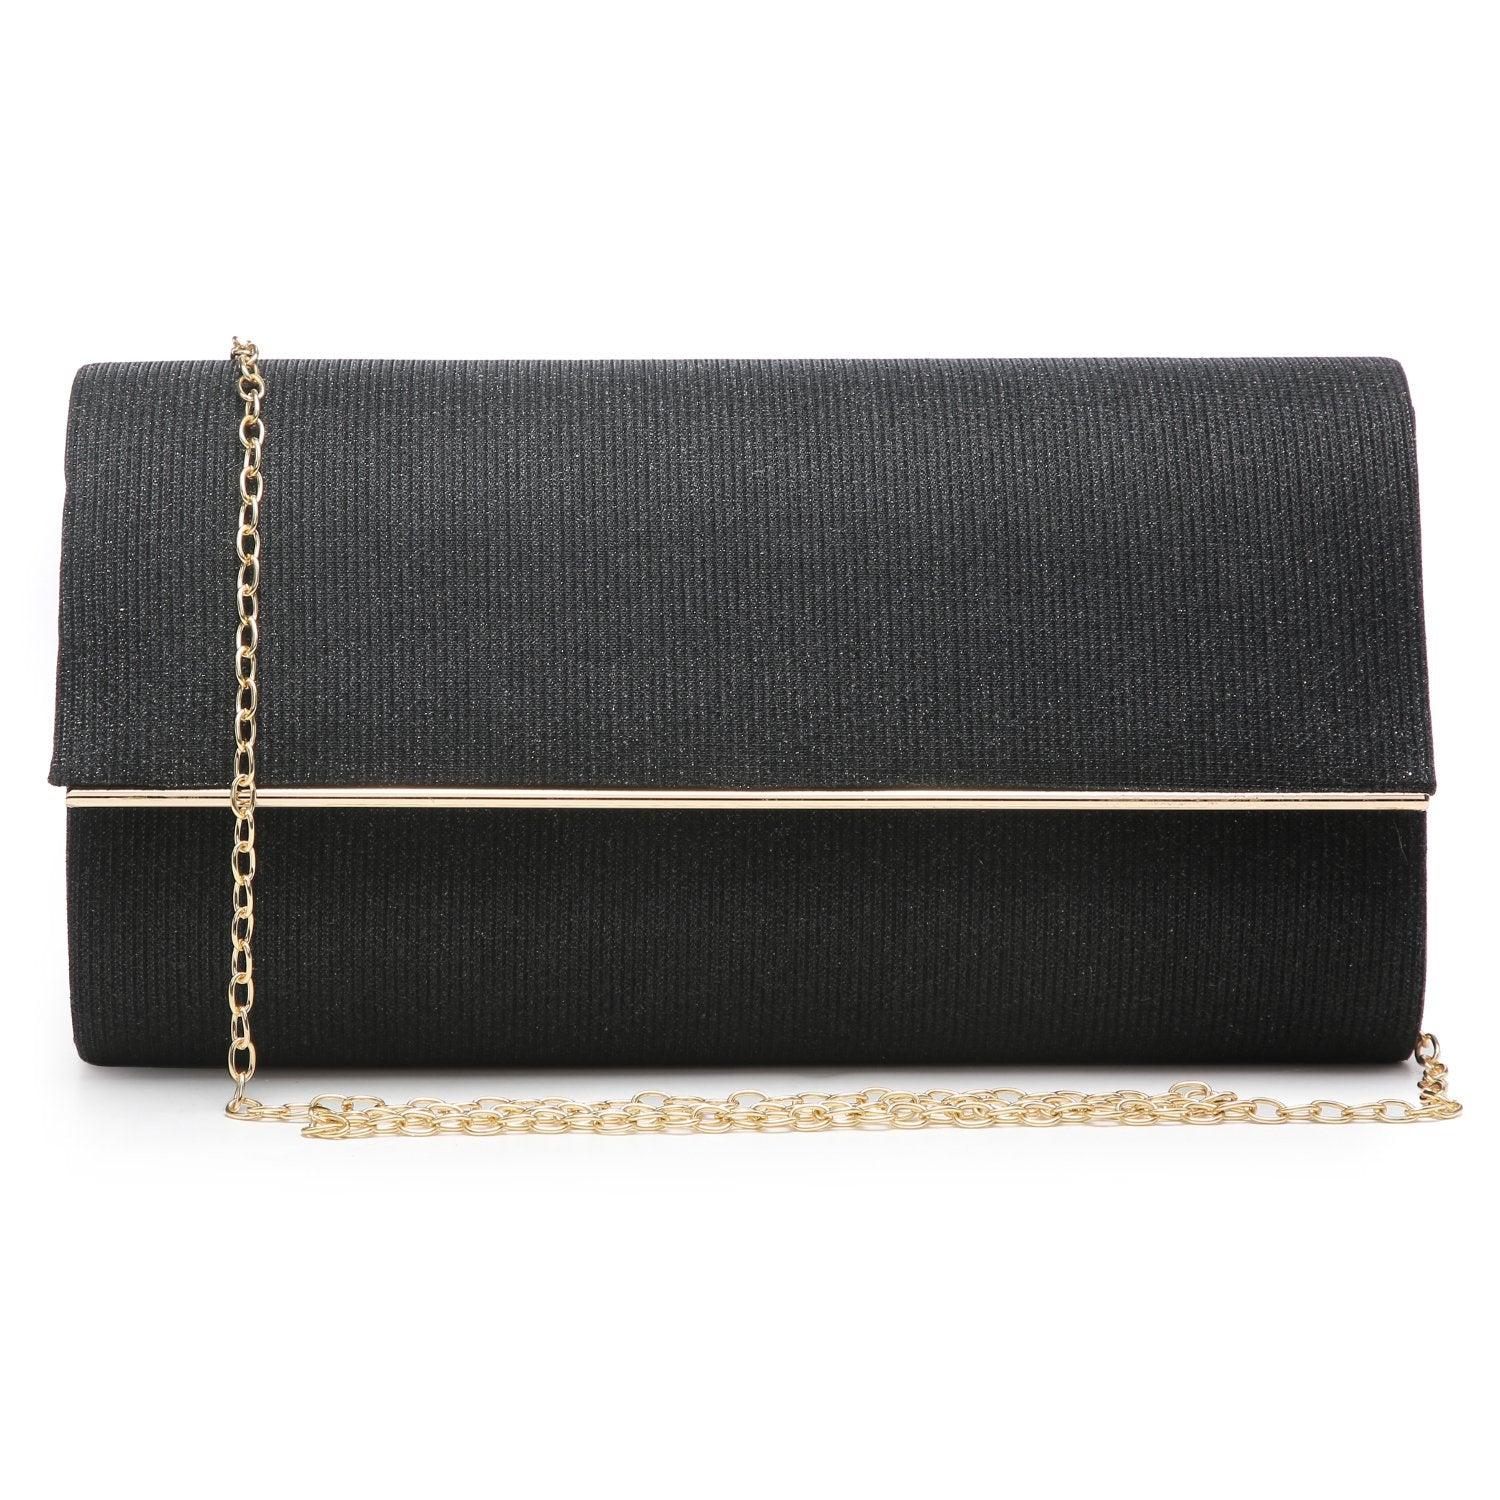 Glitter Gold Trim Evening Clutch